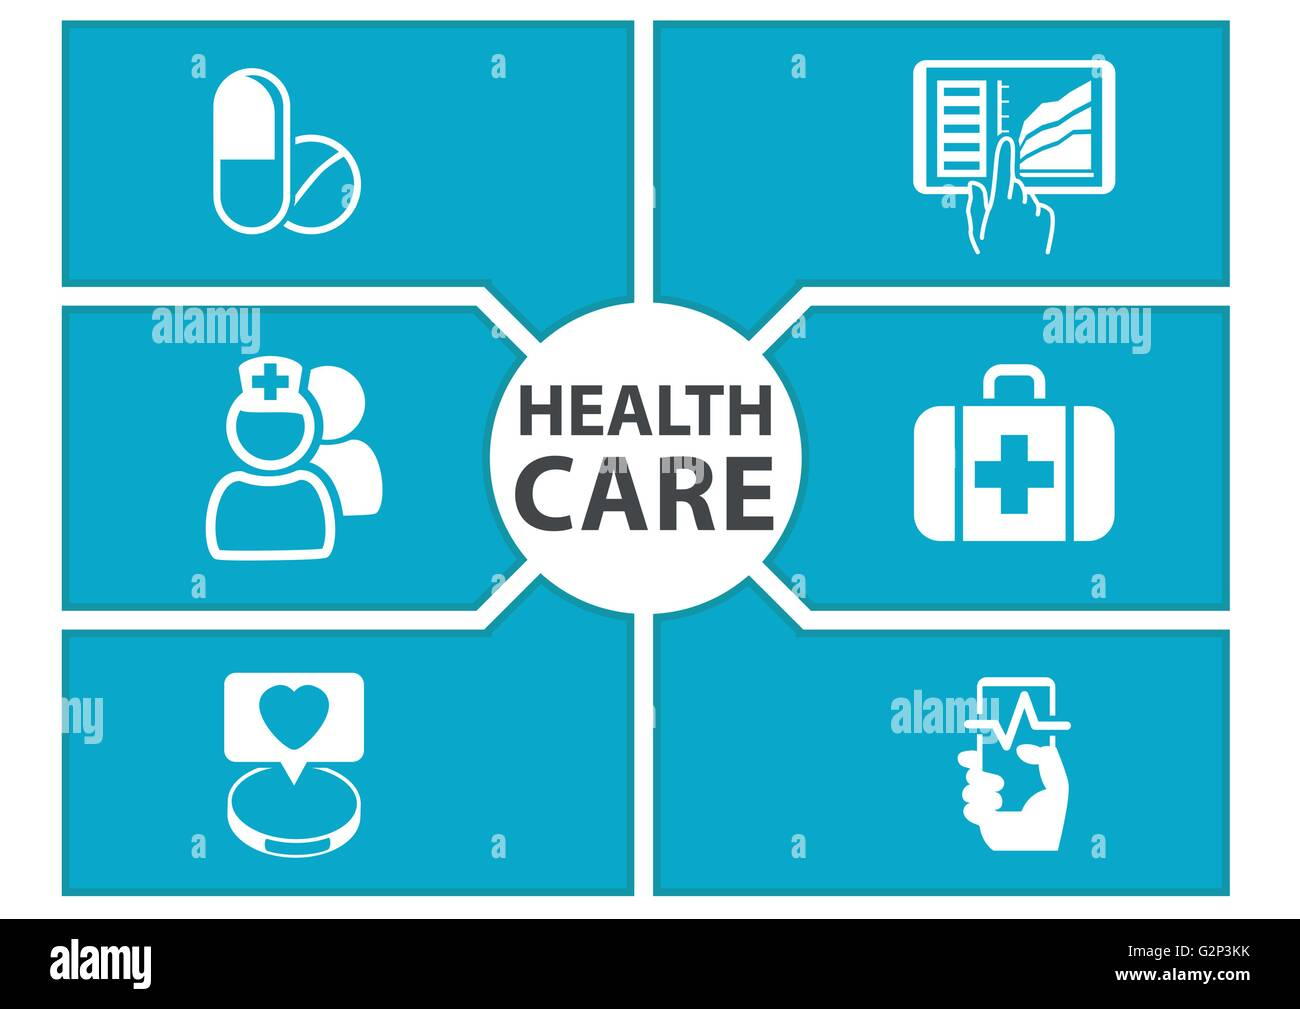 E-health care background with symbols of modern devices like smart phone, tablet, digital medical record - Stock Image